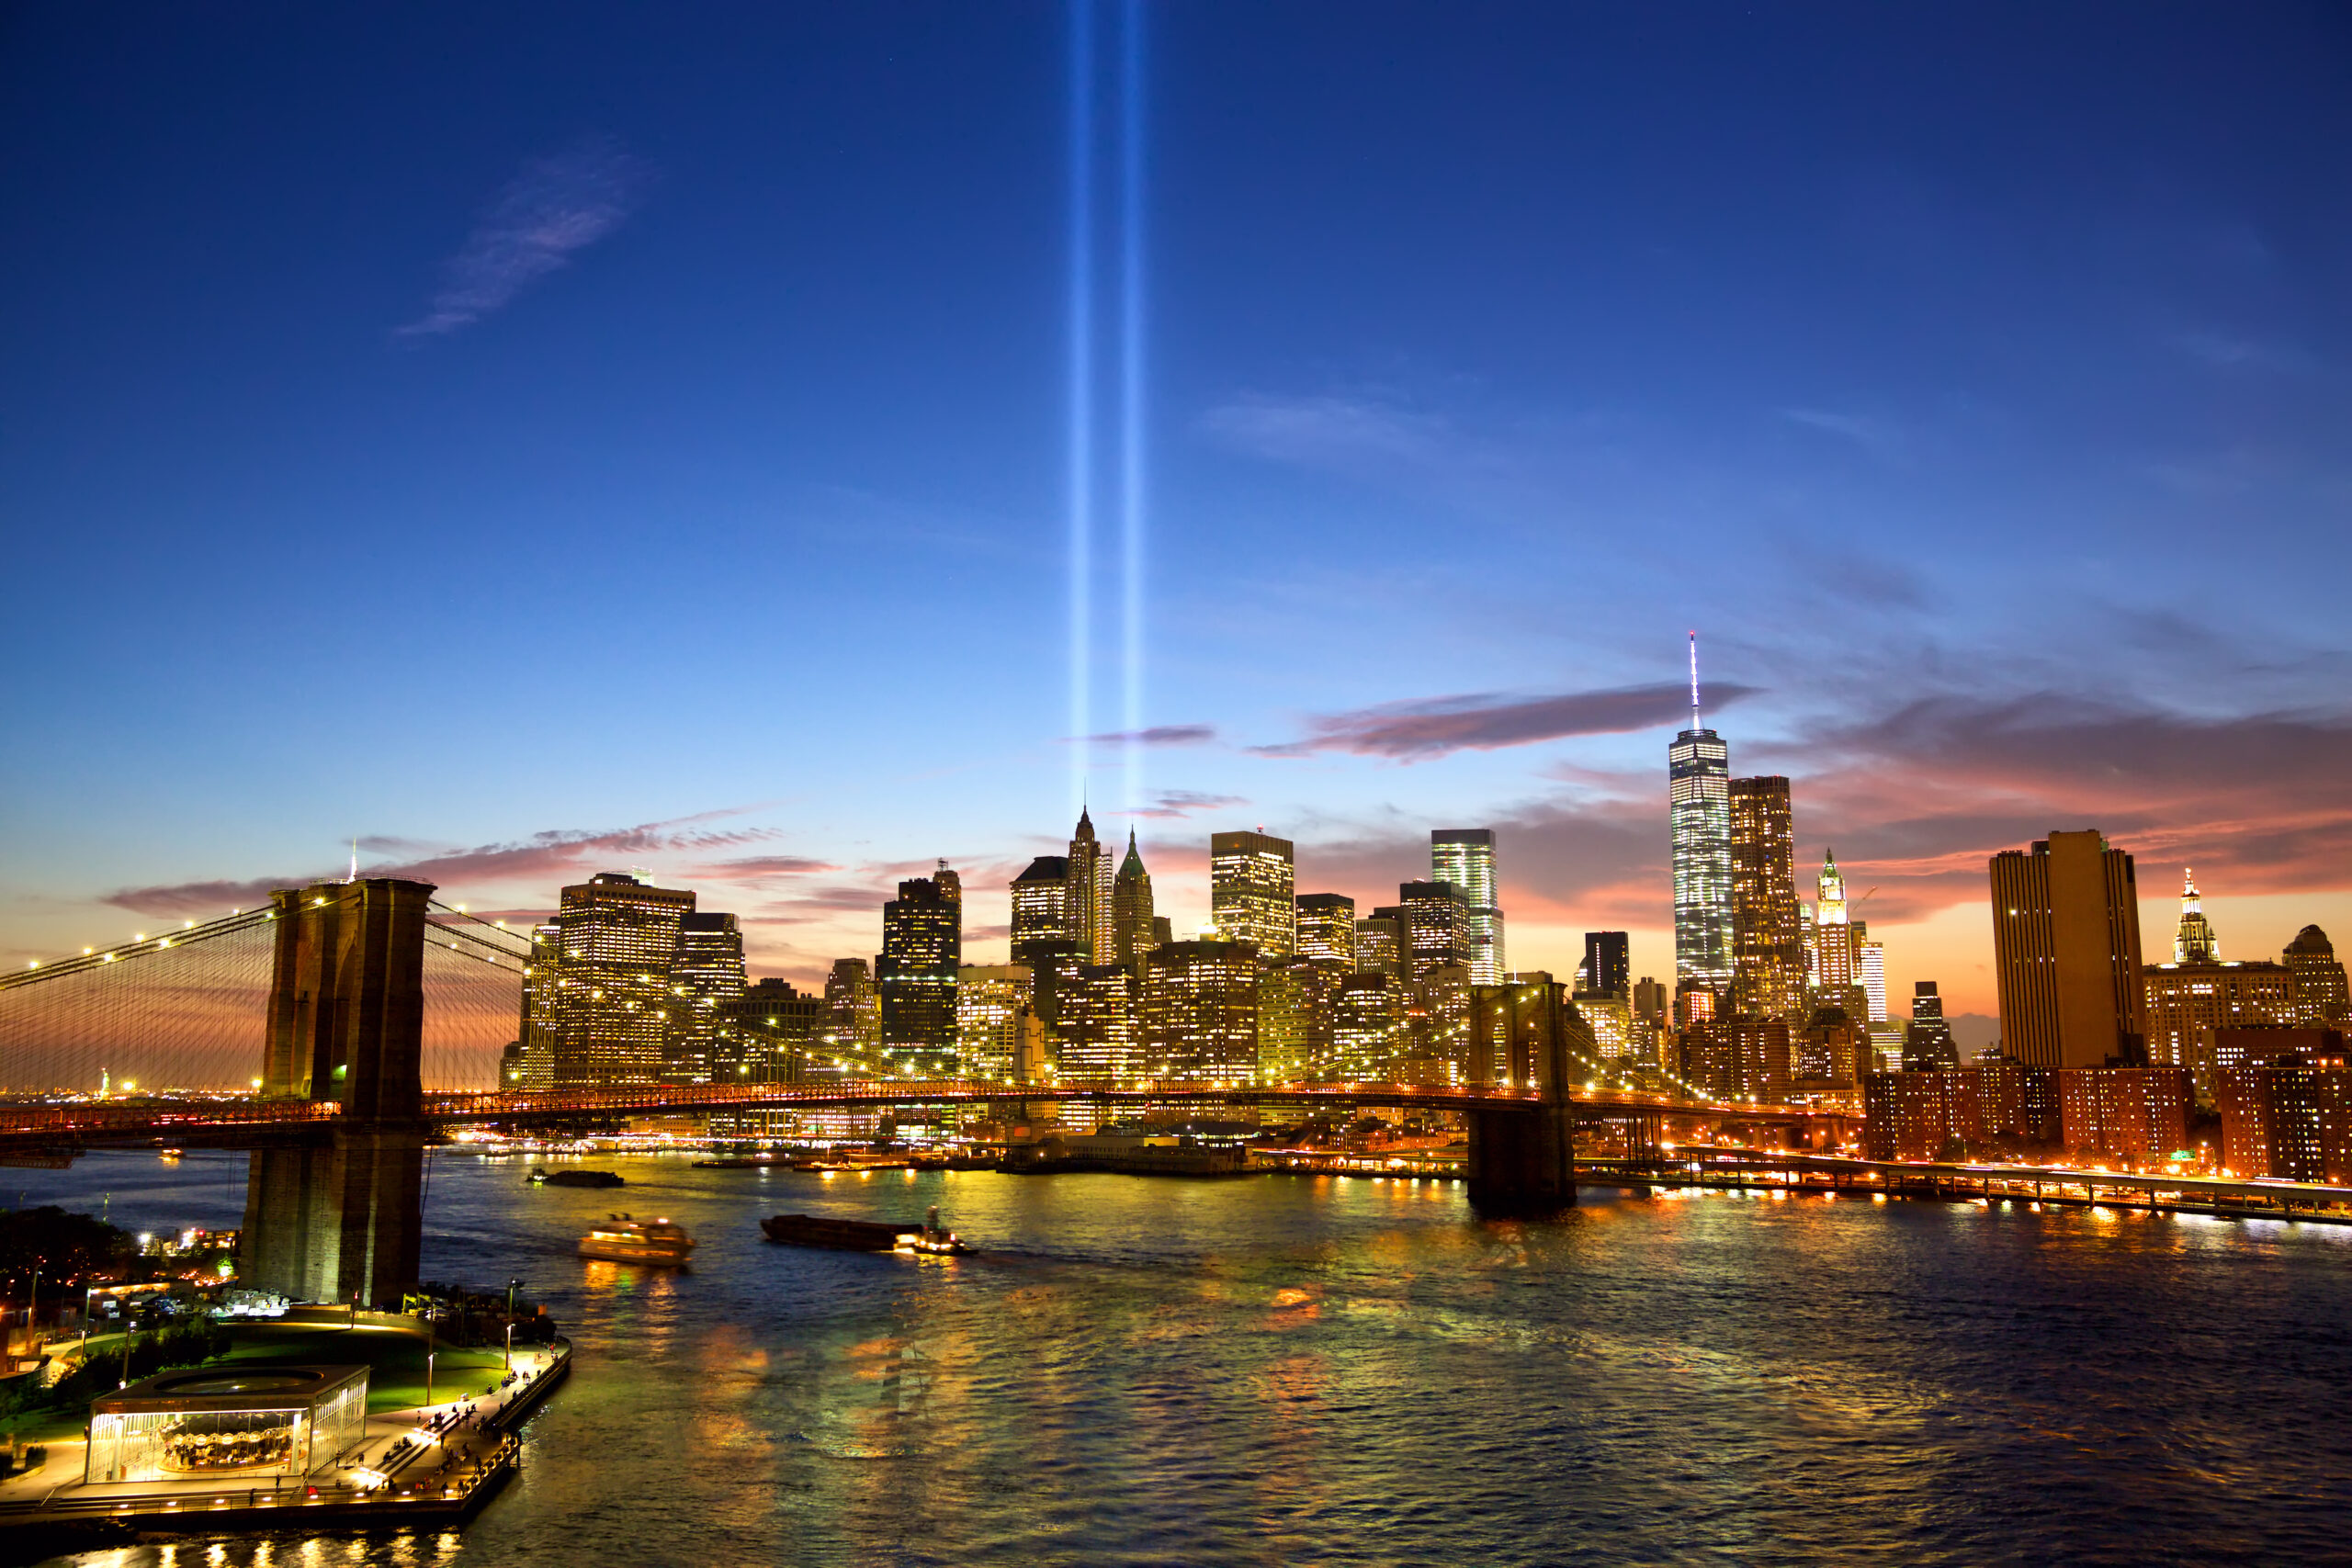 Reflection on 9/11